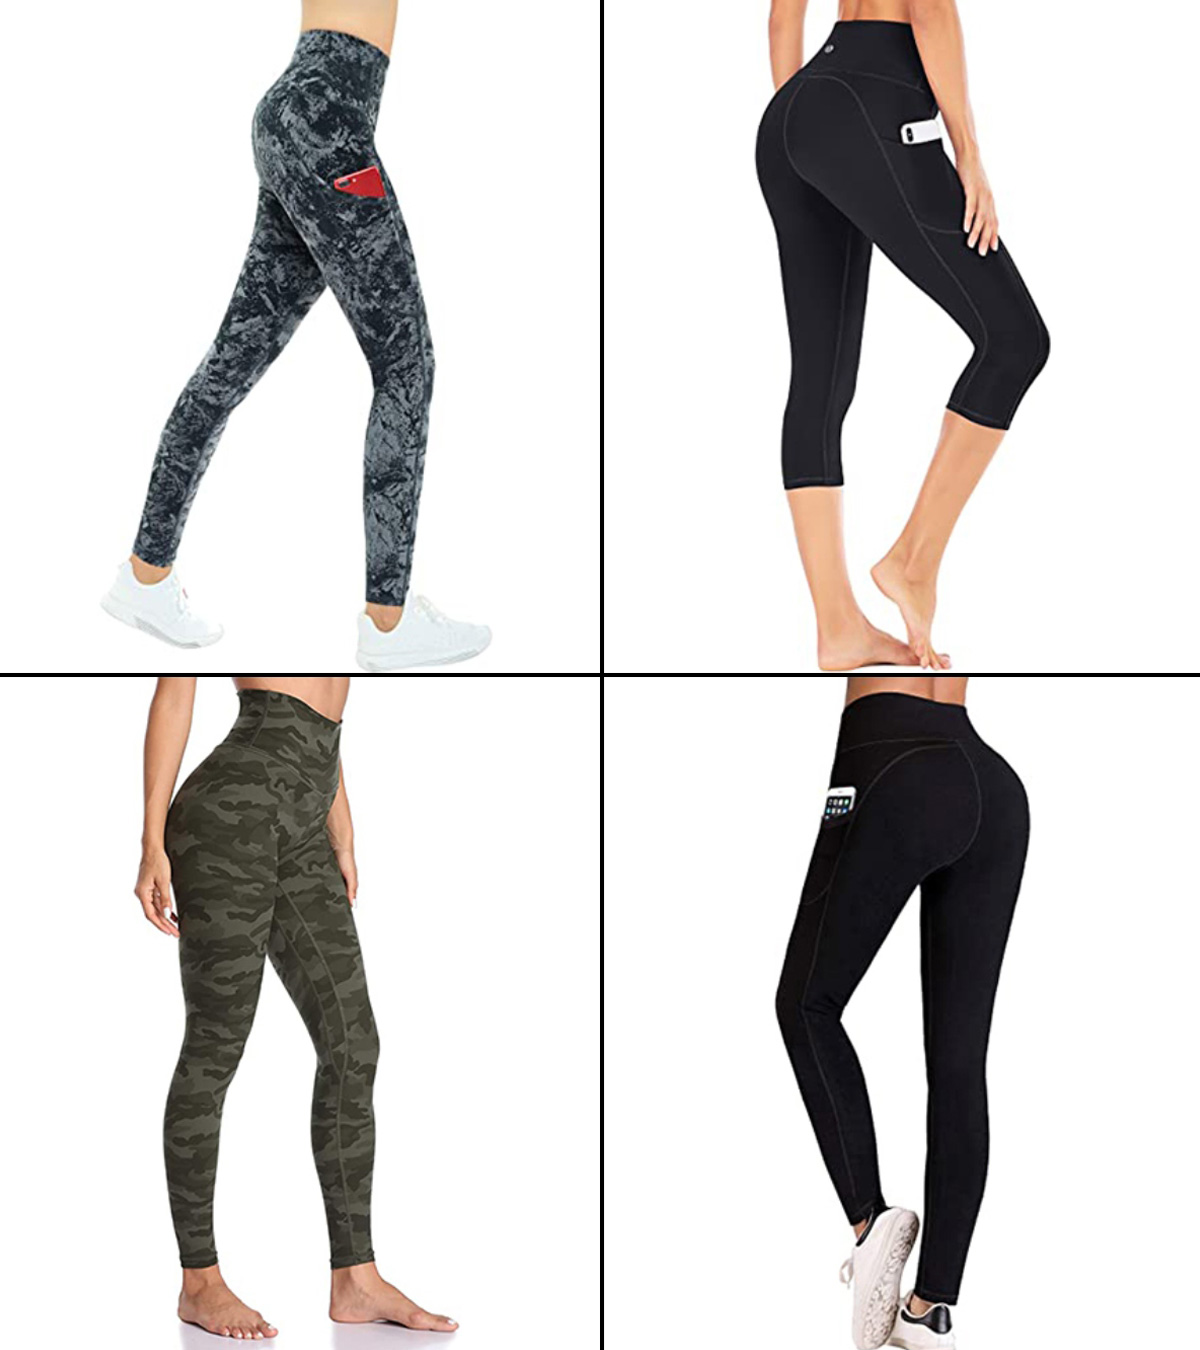 Tsmile Women Multi Pockets Cargo Pants High-Waist Sculpting Ultra Stretch Running Fitness Smoother Workout Yoga Pants